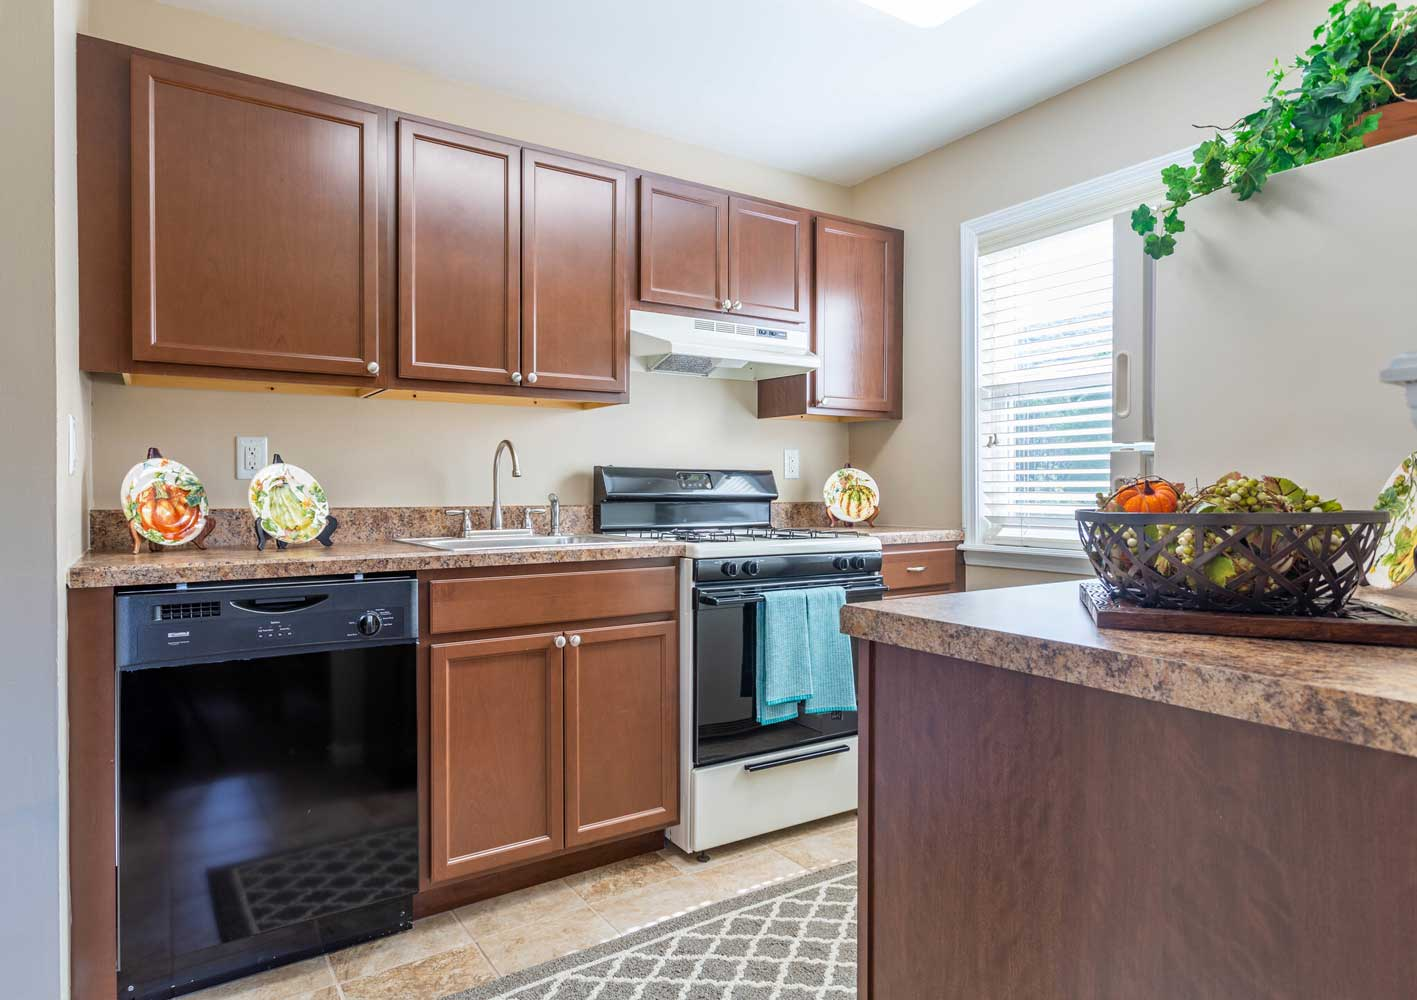 Stainless Steel Appliances at Mountainview Gardens Apartments in Fishkill, NY